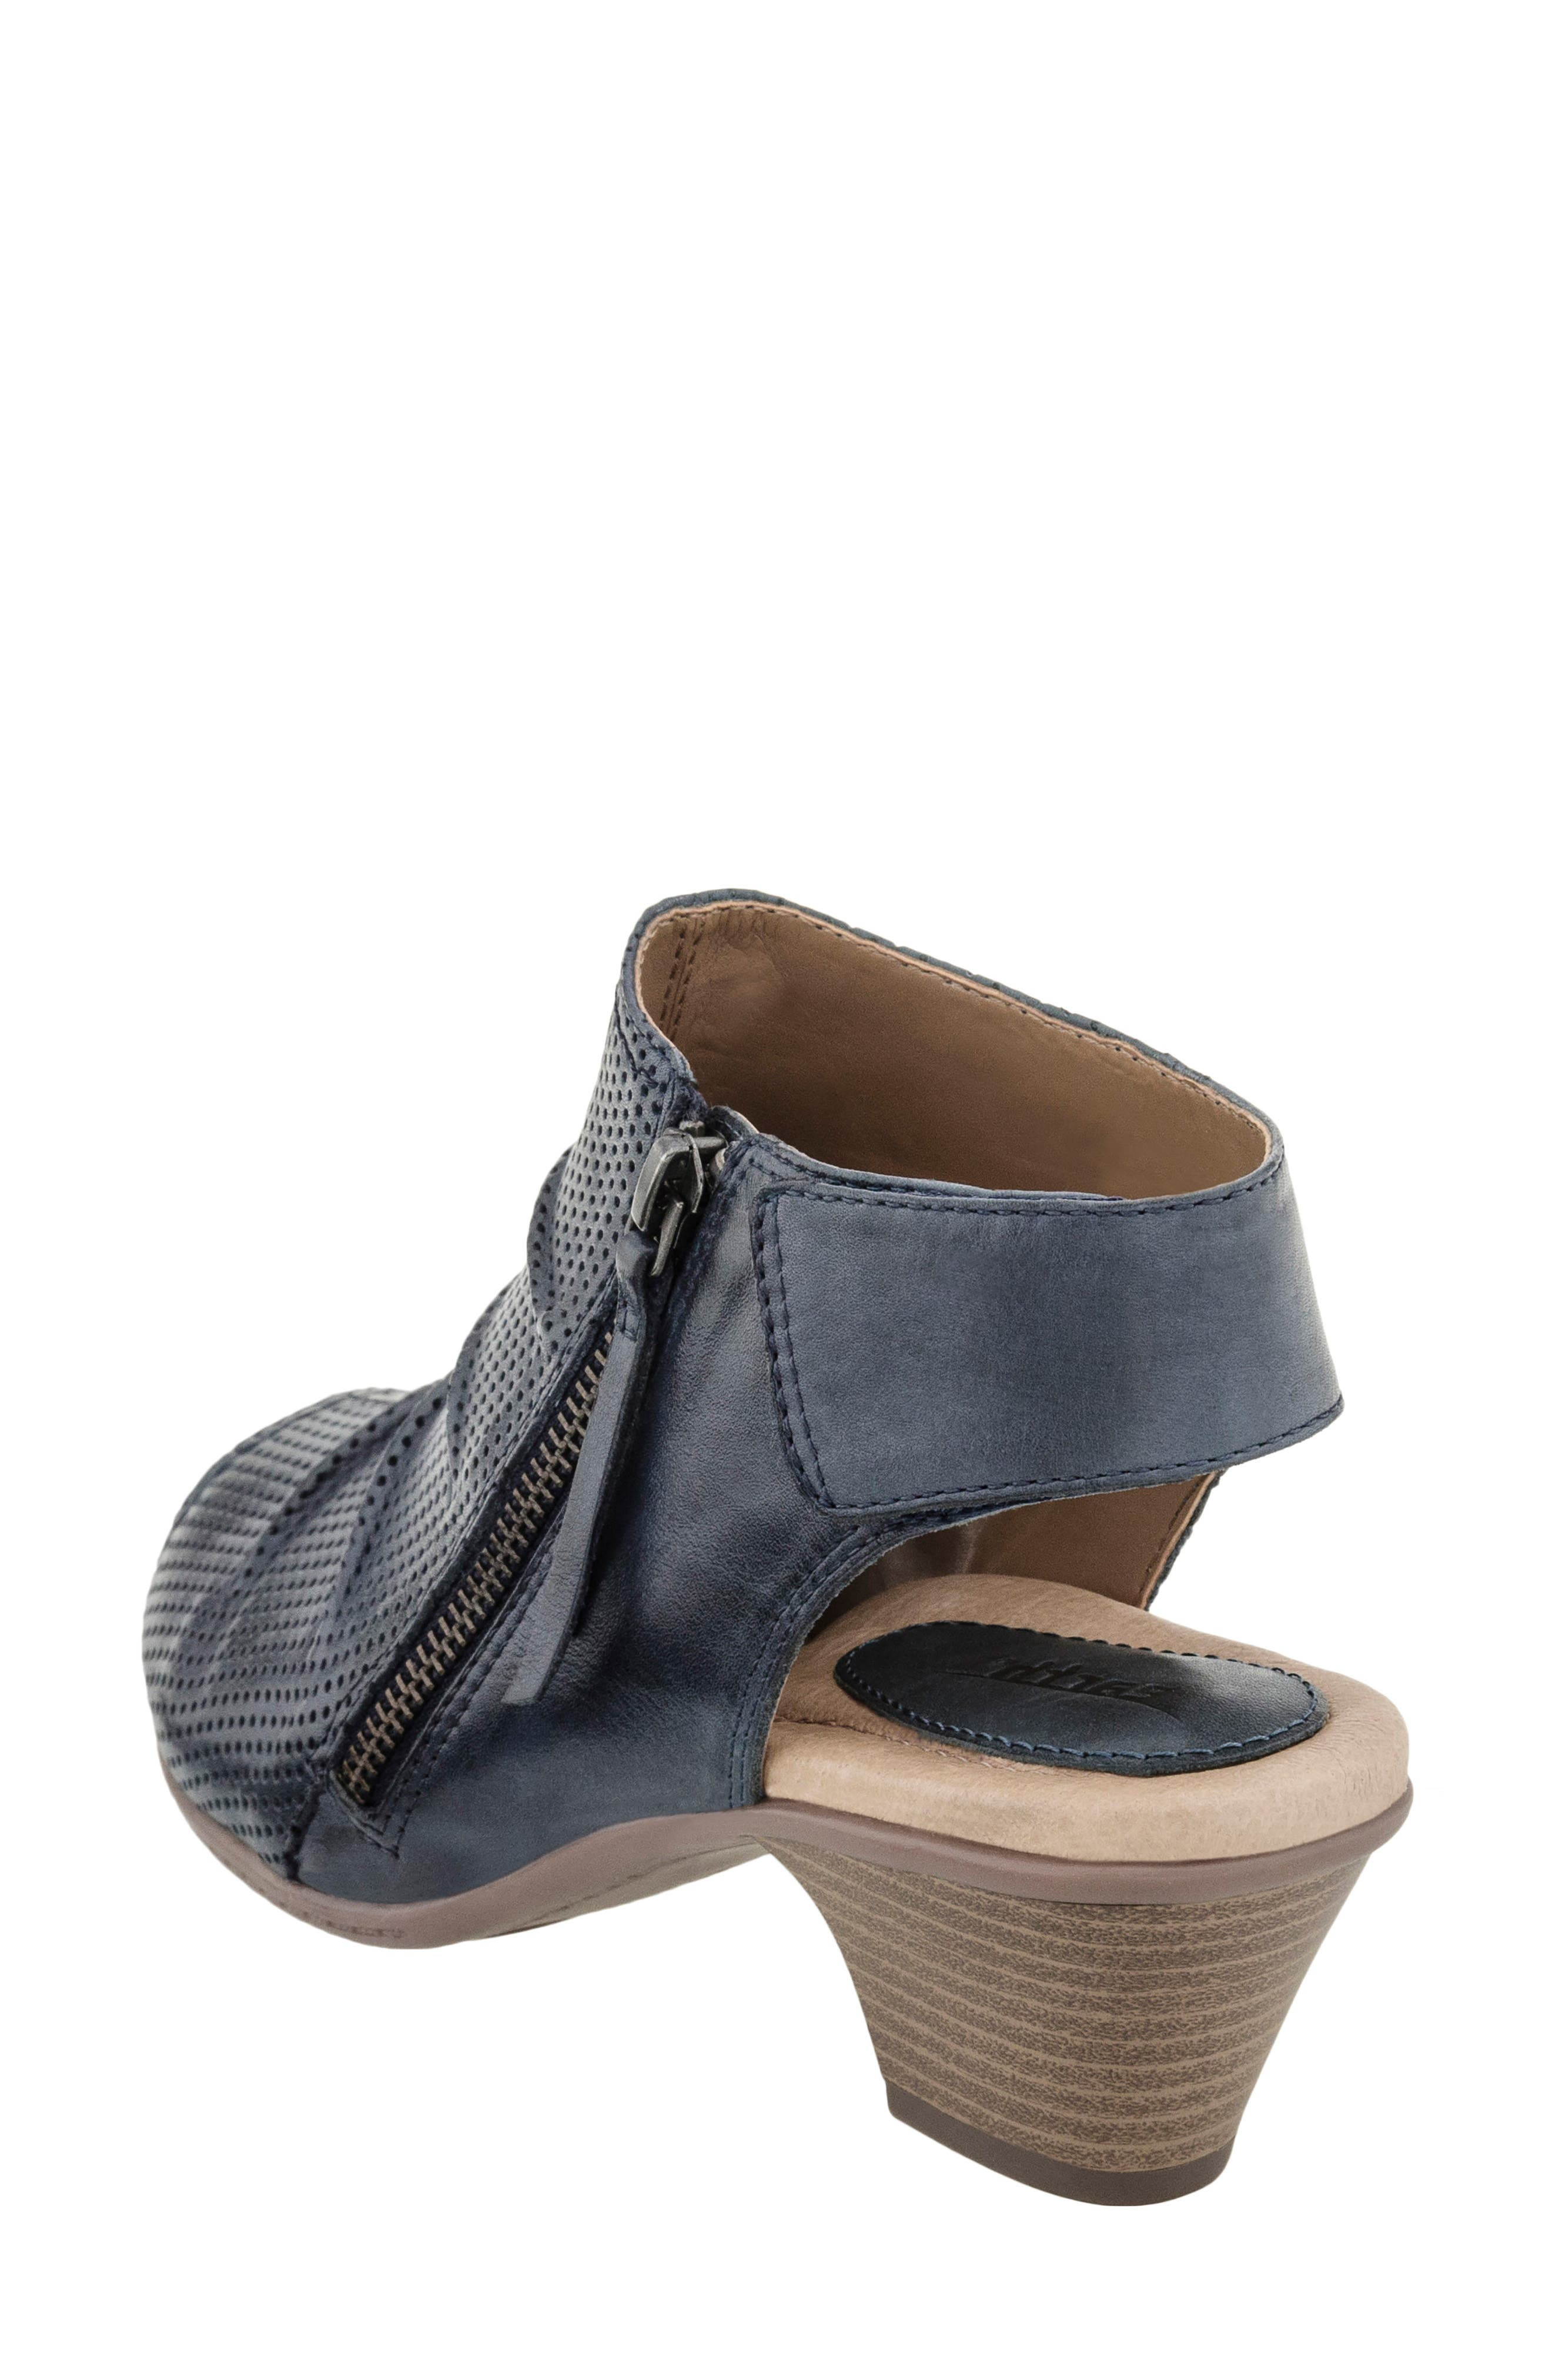 Hydra Sandal,                             Alternate thumbnail 2, color,                             Admiral Blue Soft Leather